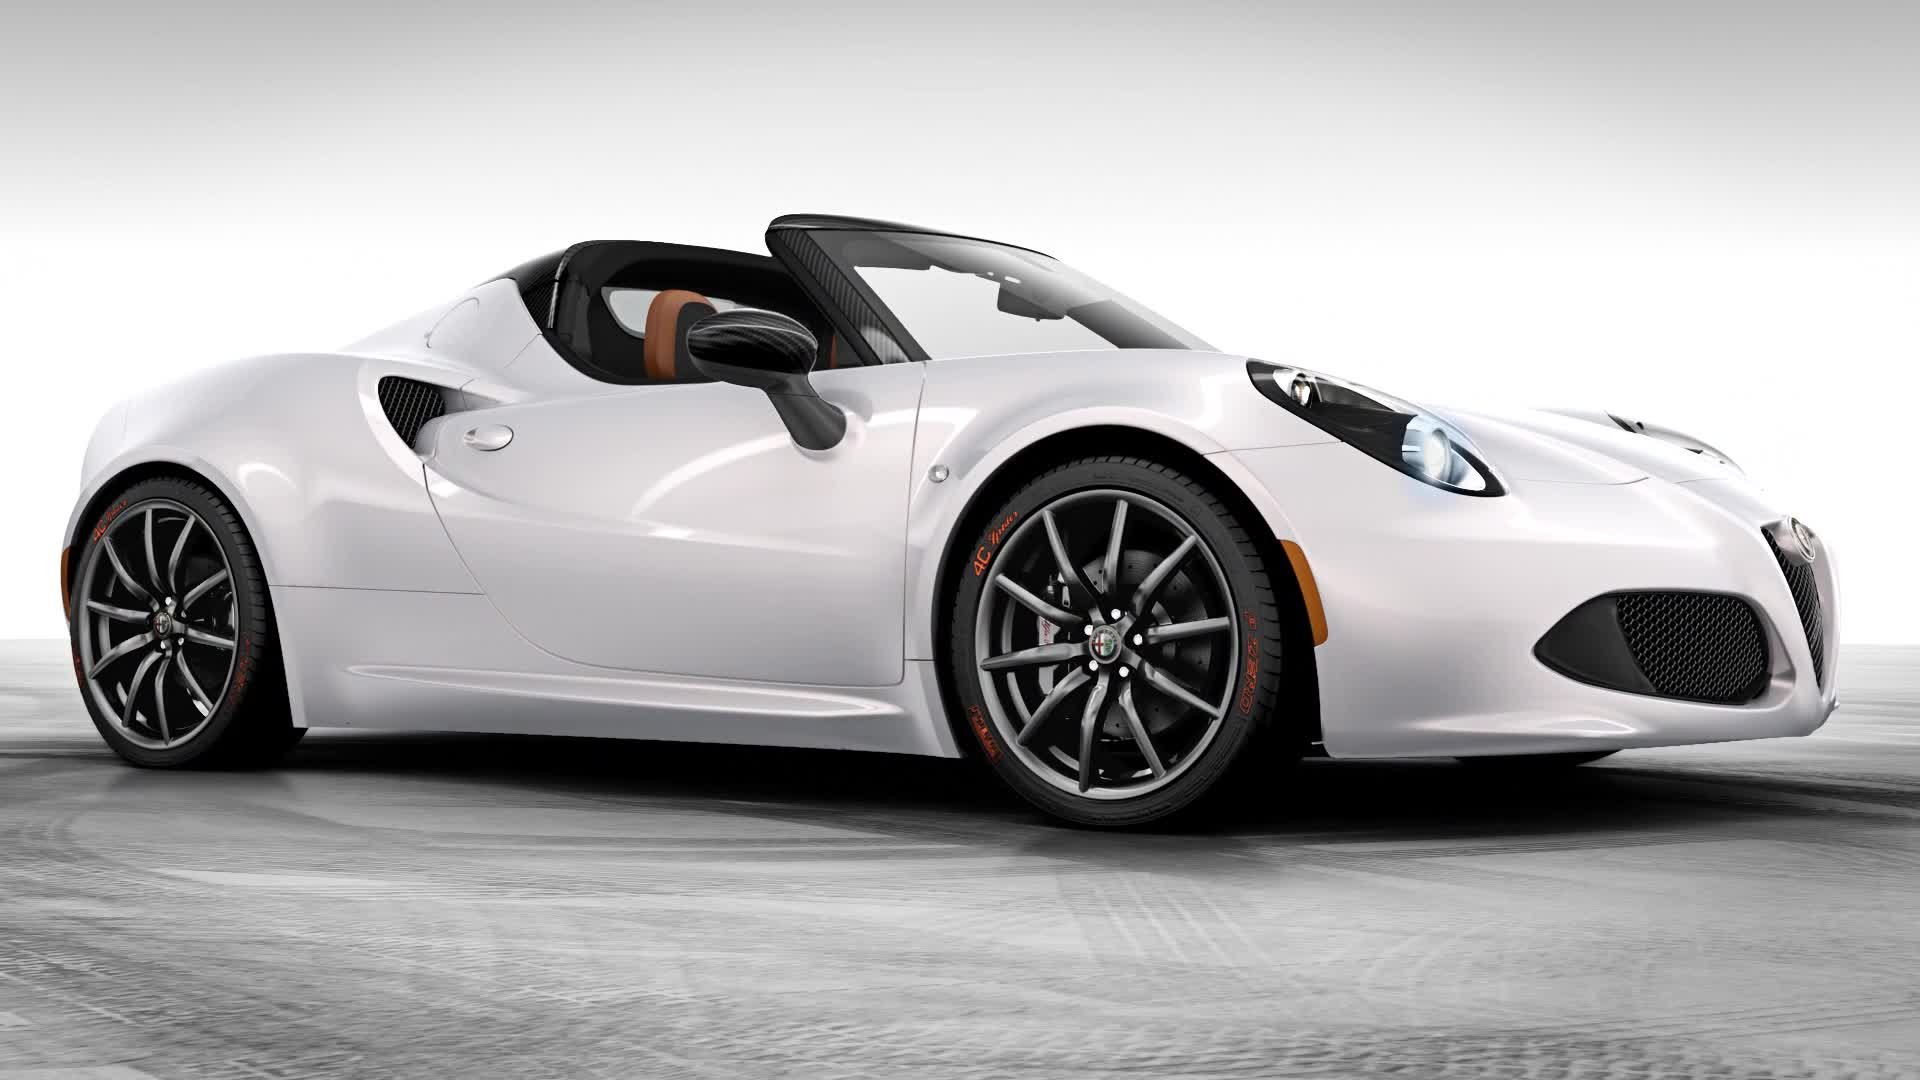 2015 alfa romeo 4c spider wallpaper 47519 1920x1080 px. Black Bedroom Furniture Sets. Home Design Ideas